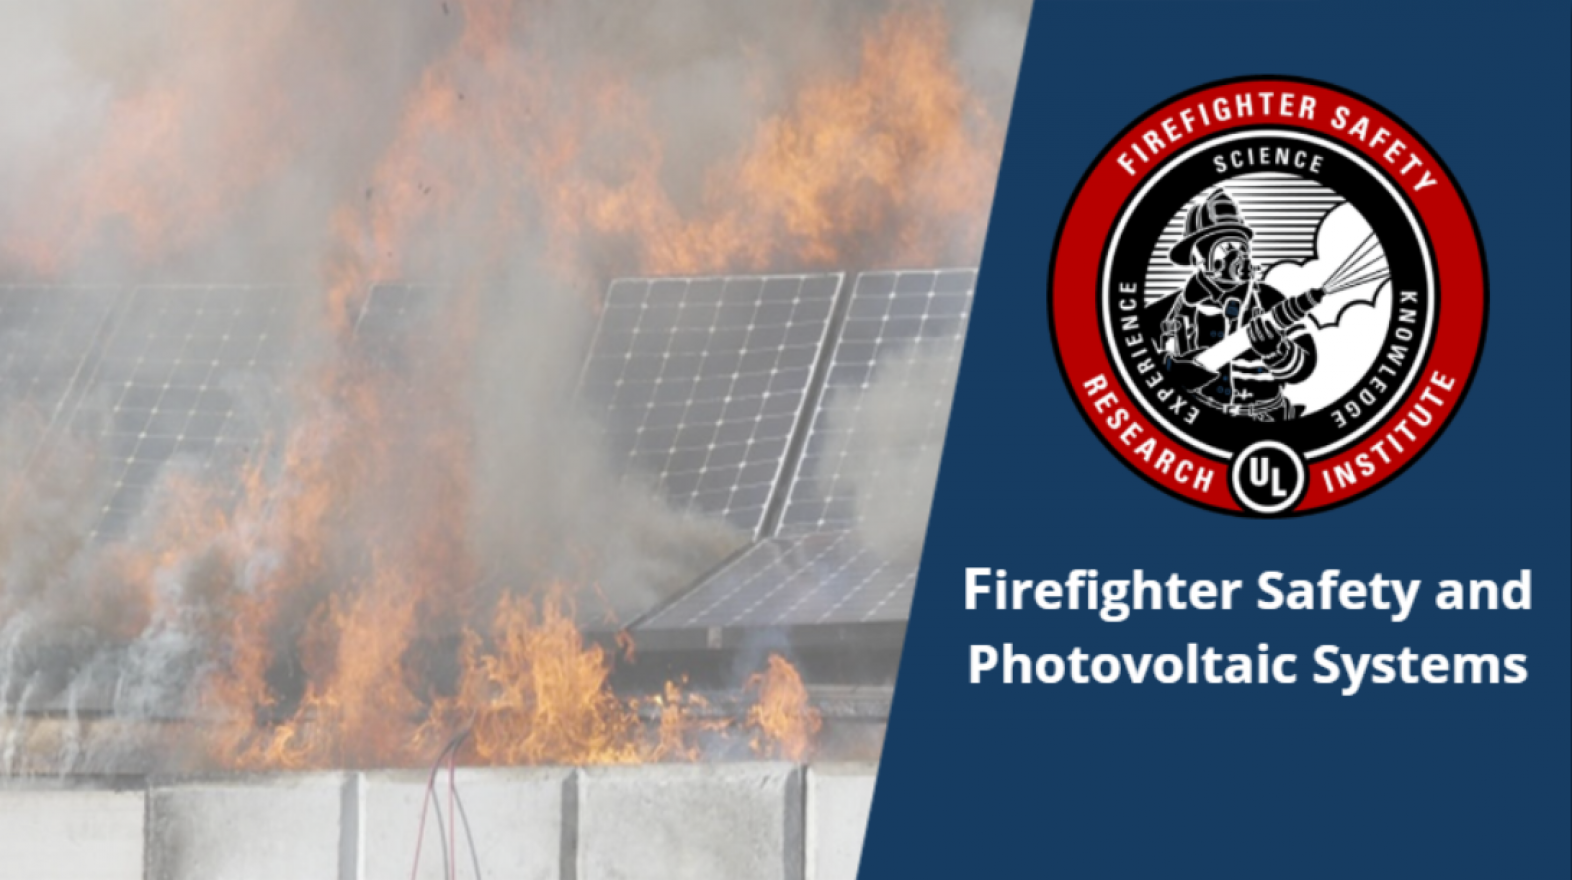 Firefighter Safety and Photovoltaic Systems